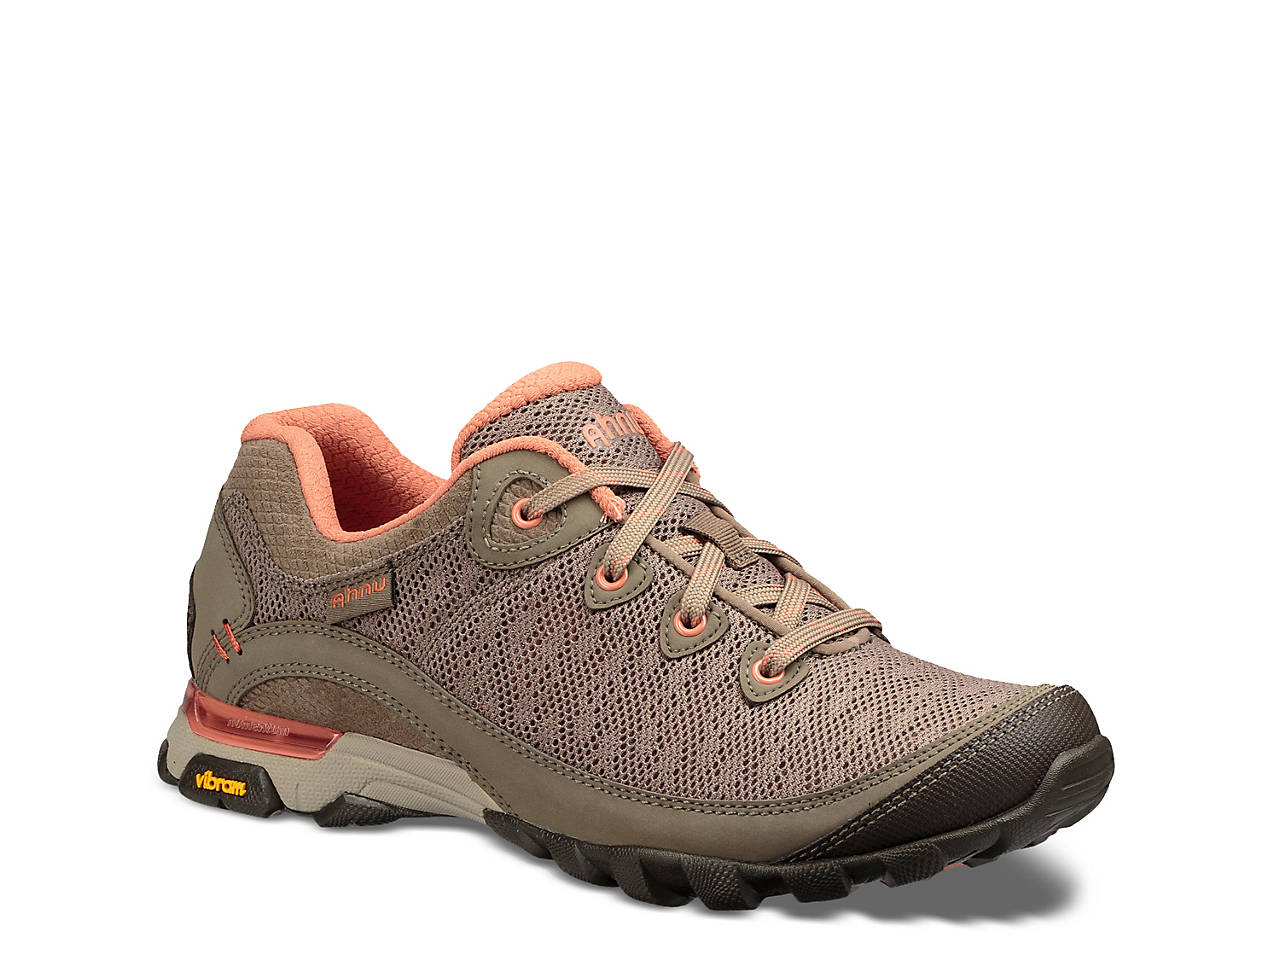 d47e0139caa Sugarpine II Air Mesh Hiking Shoe